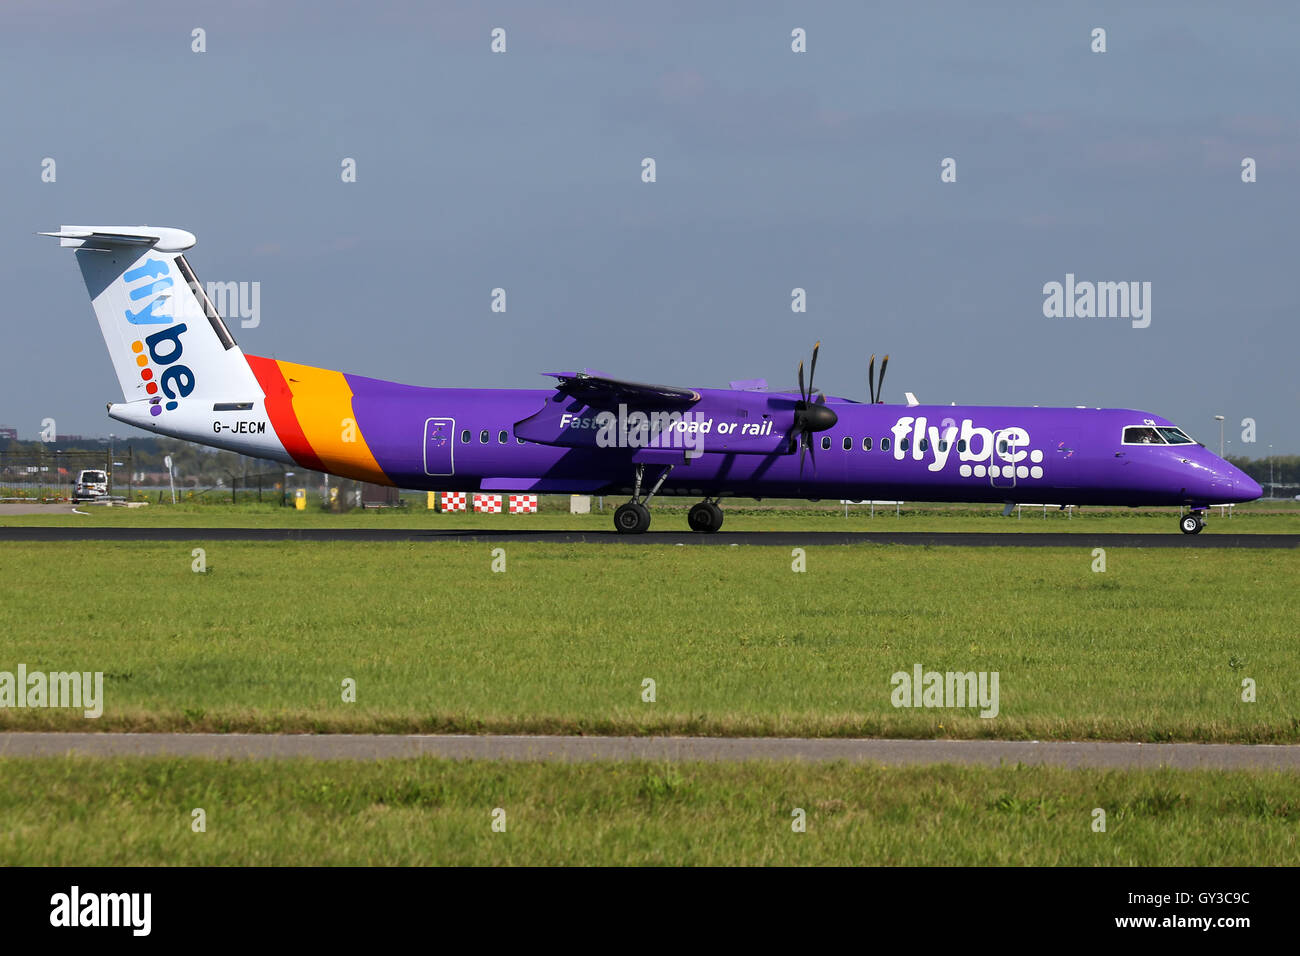 FlyBe DeHavilland Dash-8 touches down on runway 18R at Amsterdam Schipol airport. - Stock Image